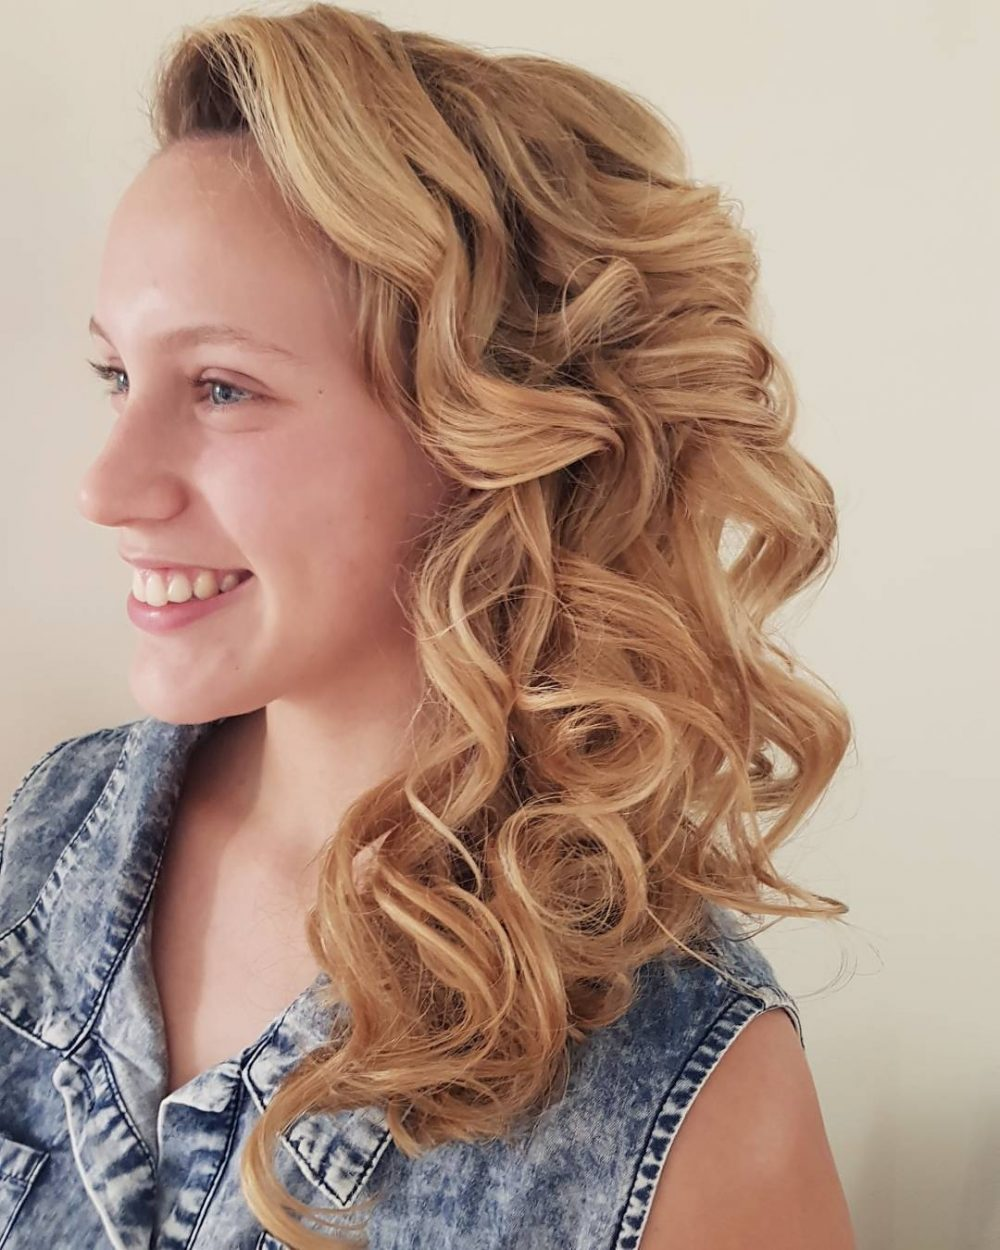 Long-Lasting Side Curls hairstyle